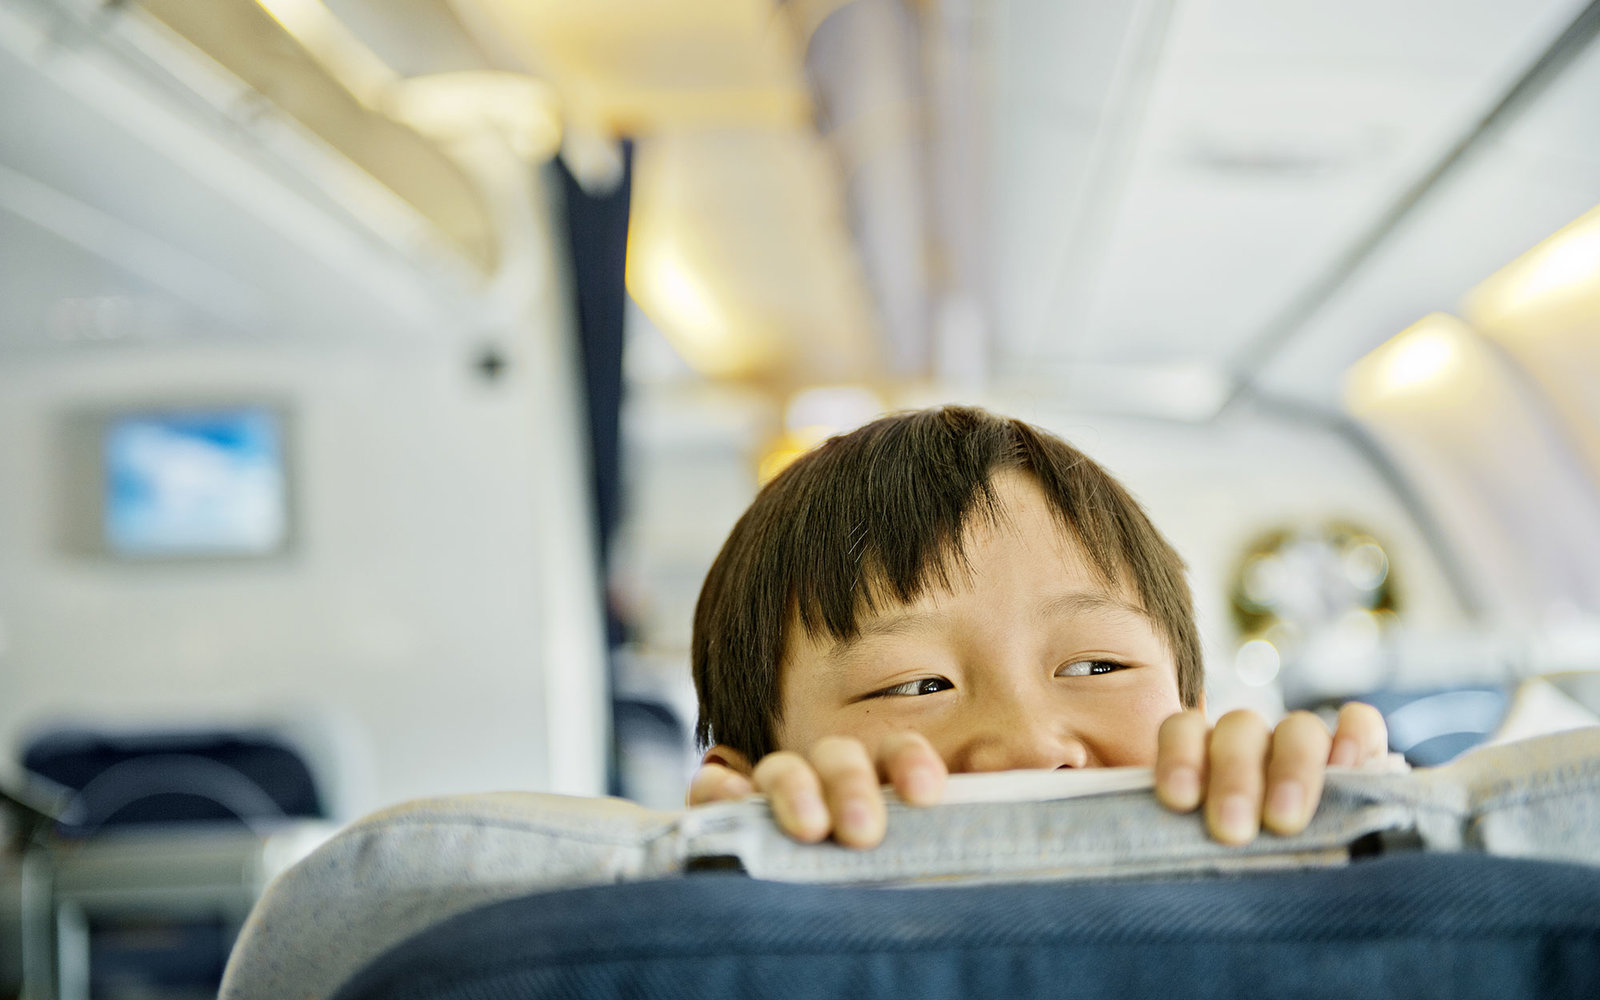 Boy looking over business class seat of plane